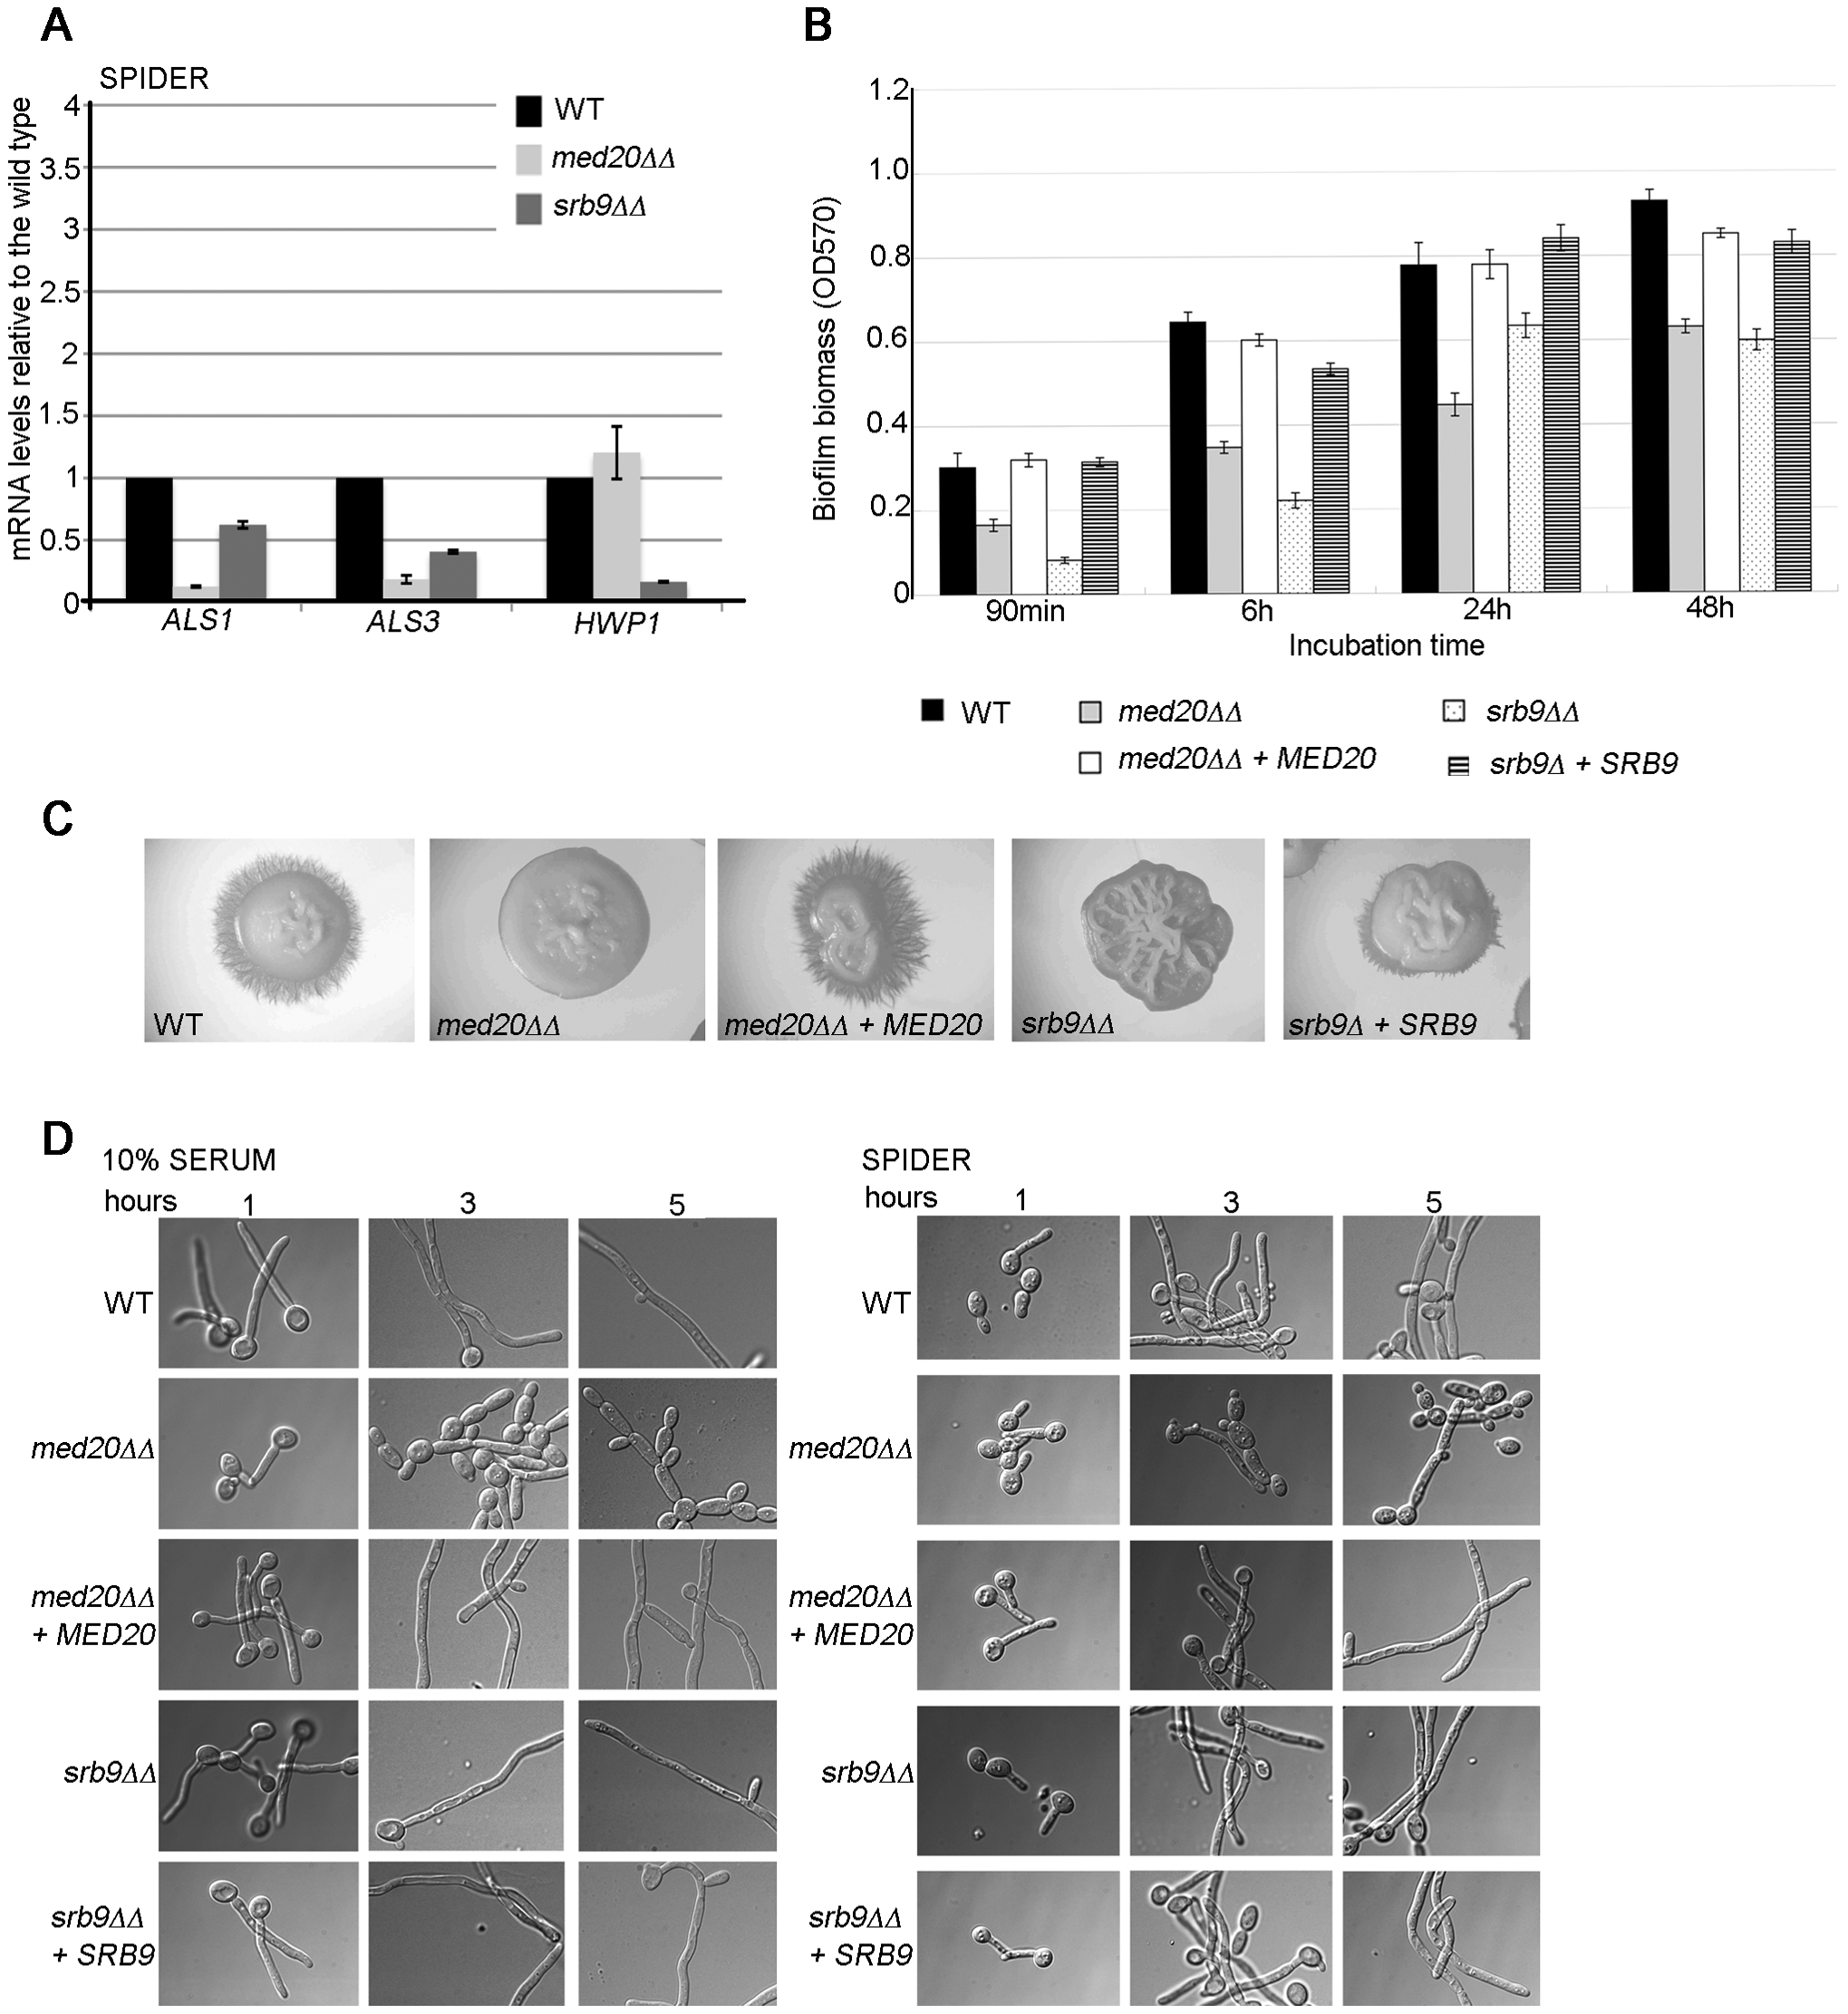 The Mediator Head domain subunit <i>MED20</i> and <i>SRB9/MED13</i> from the Kinase domain contribute to filamentous growth and biofilm formation by <i>C. albicans</i>.